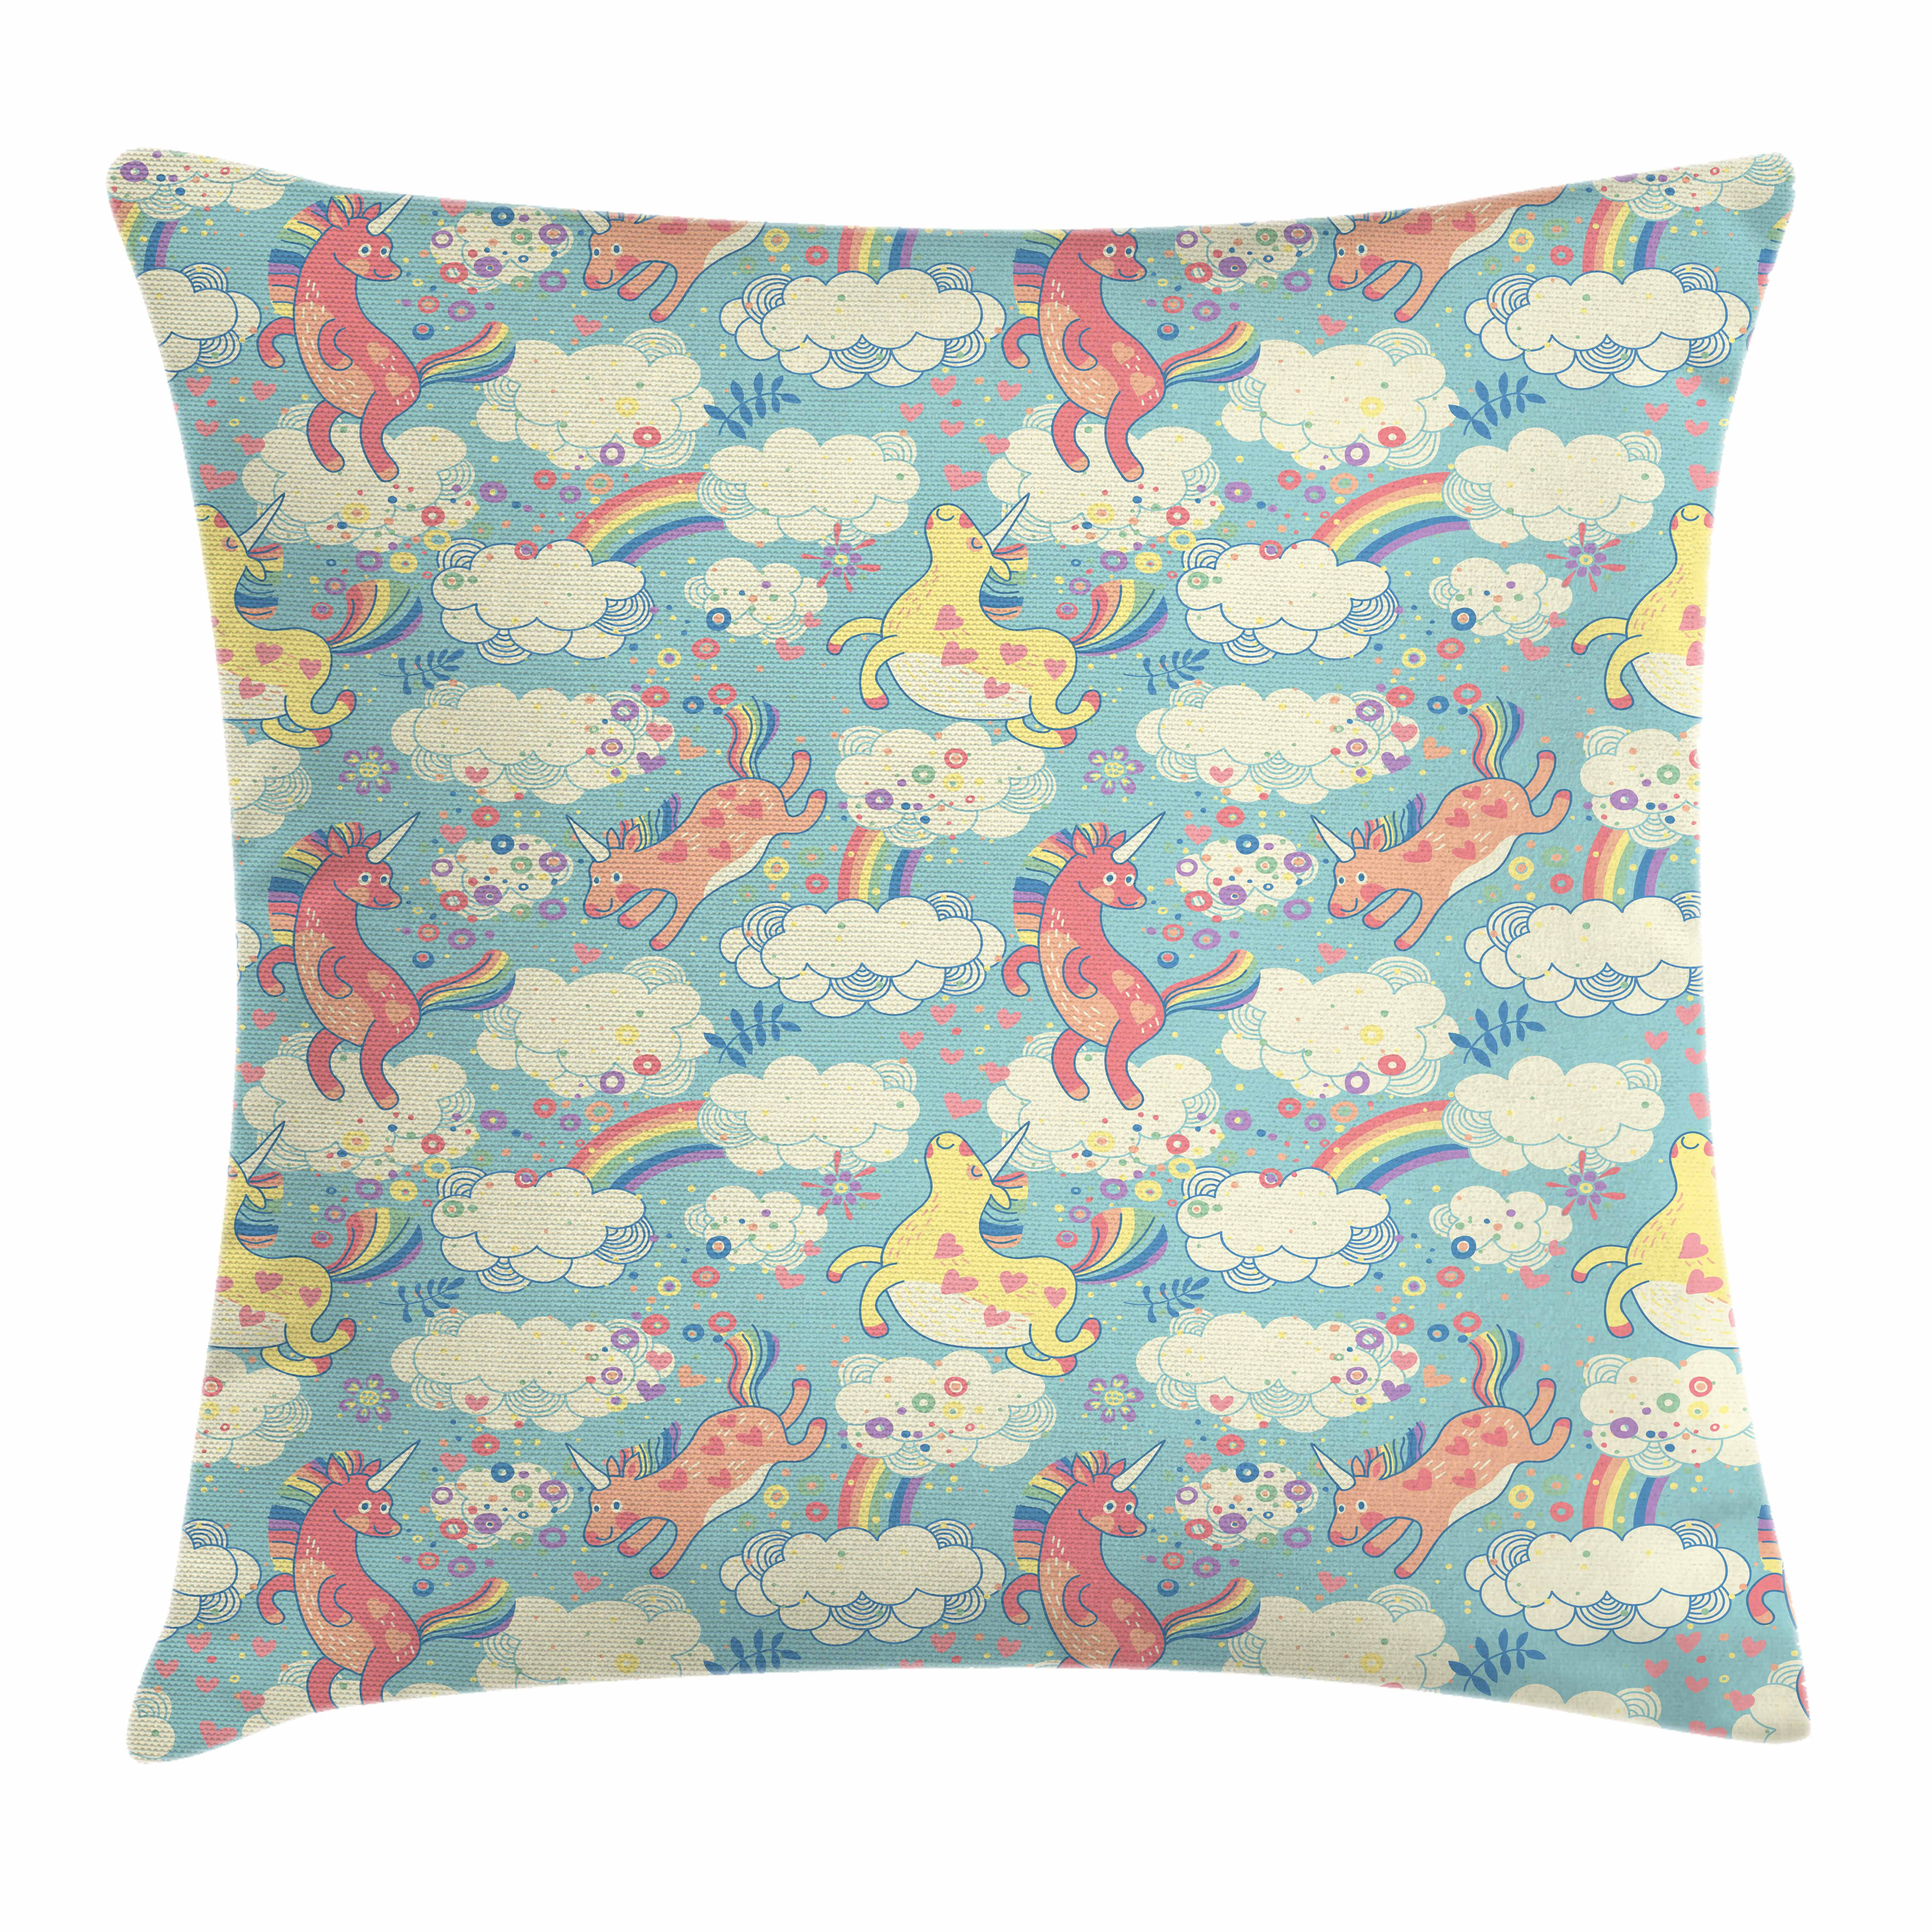 Pastel Throw Pillow Cushion Cover, Rainbow Unicorns Flying in Sky with Clouds Children Cheerful Kids Room Nursery Decor, Decorative Square Accent Pillow Case, 16 X 16 Inches, Multicolor, by Ambesonne